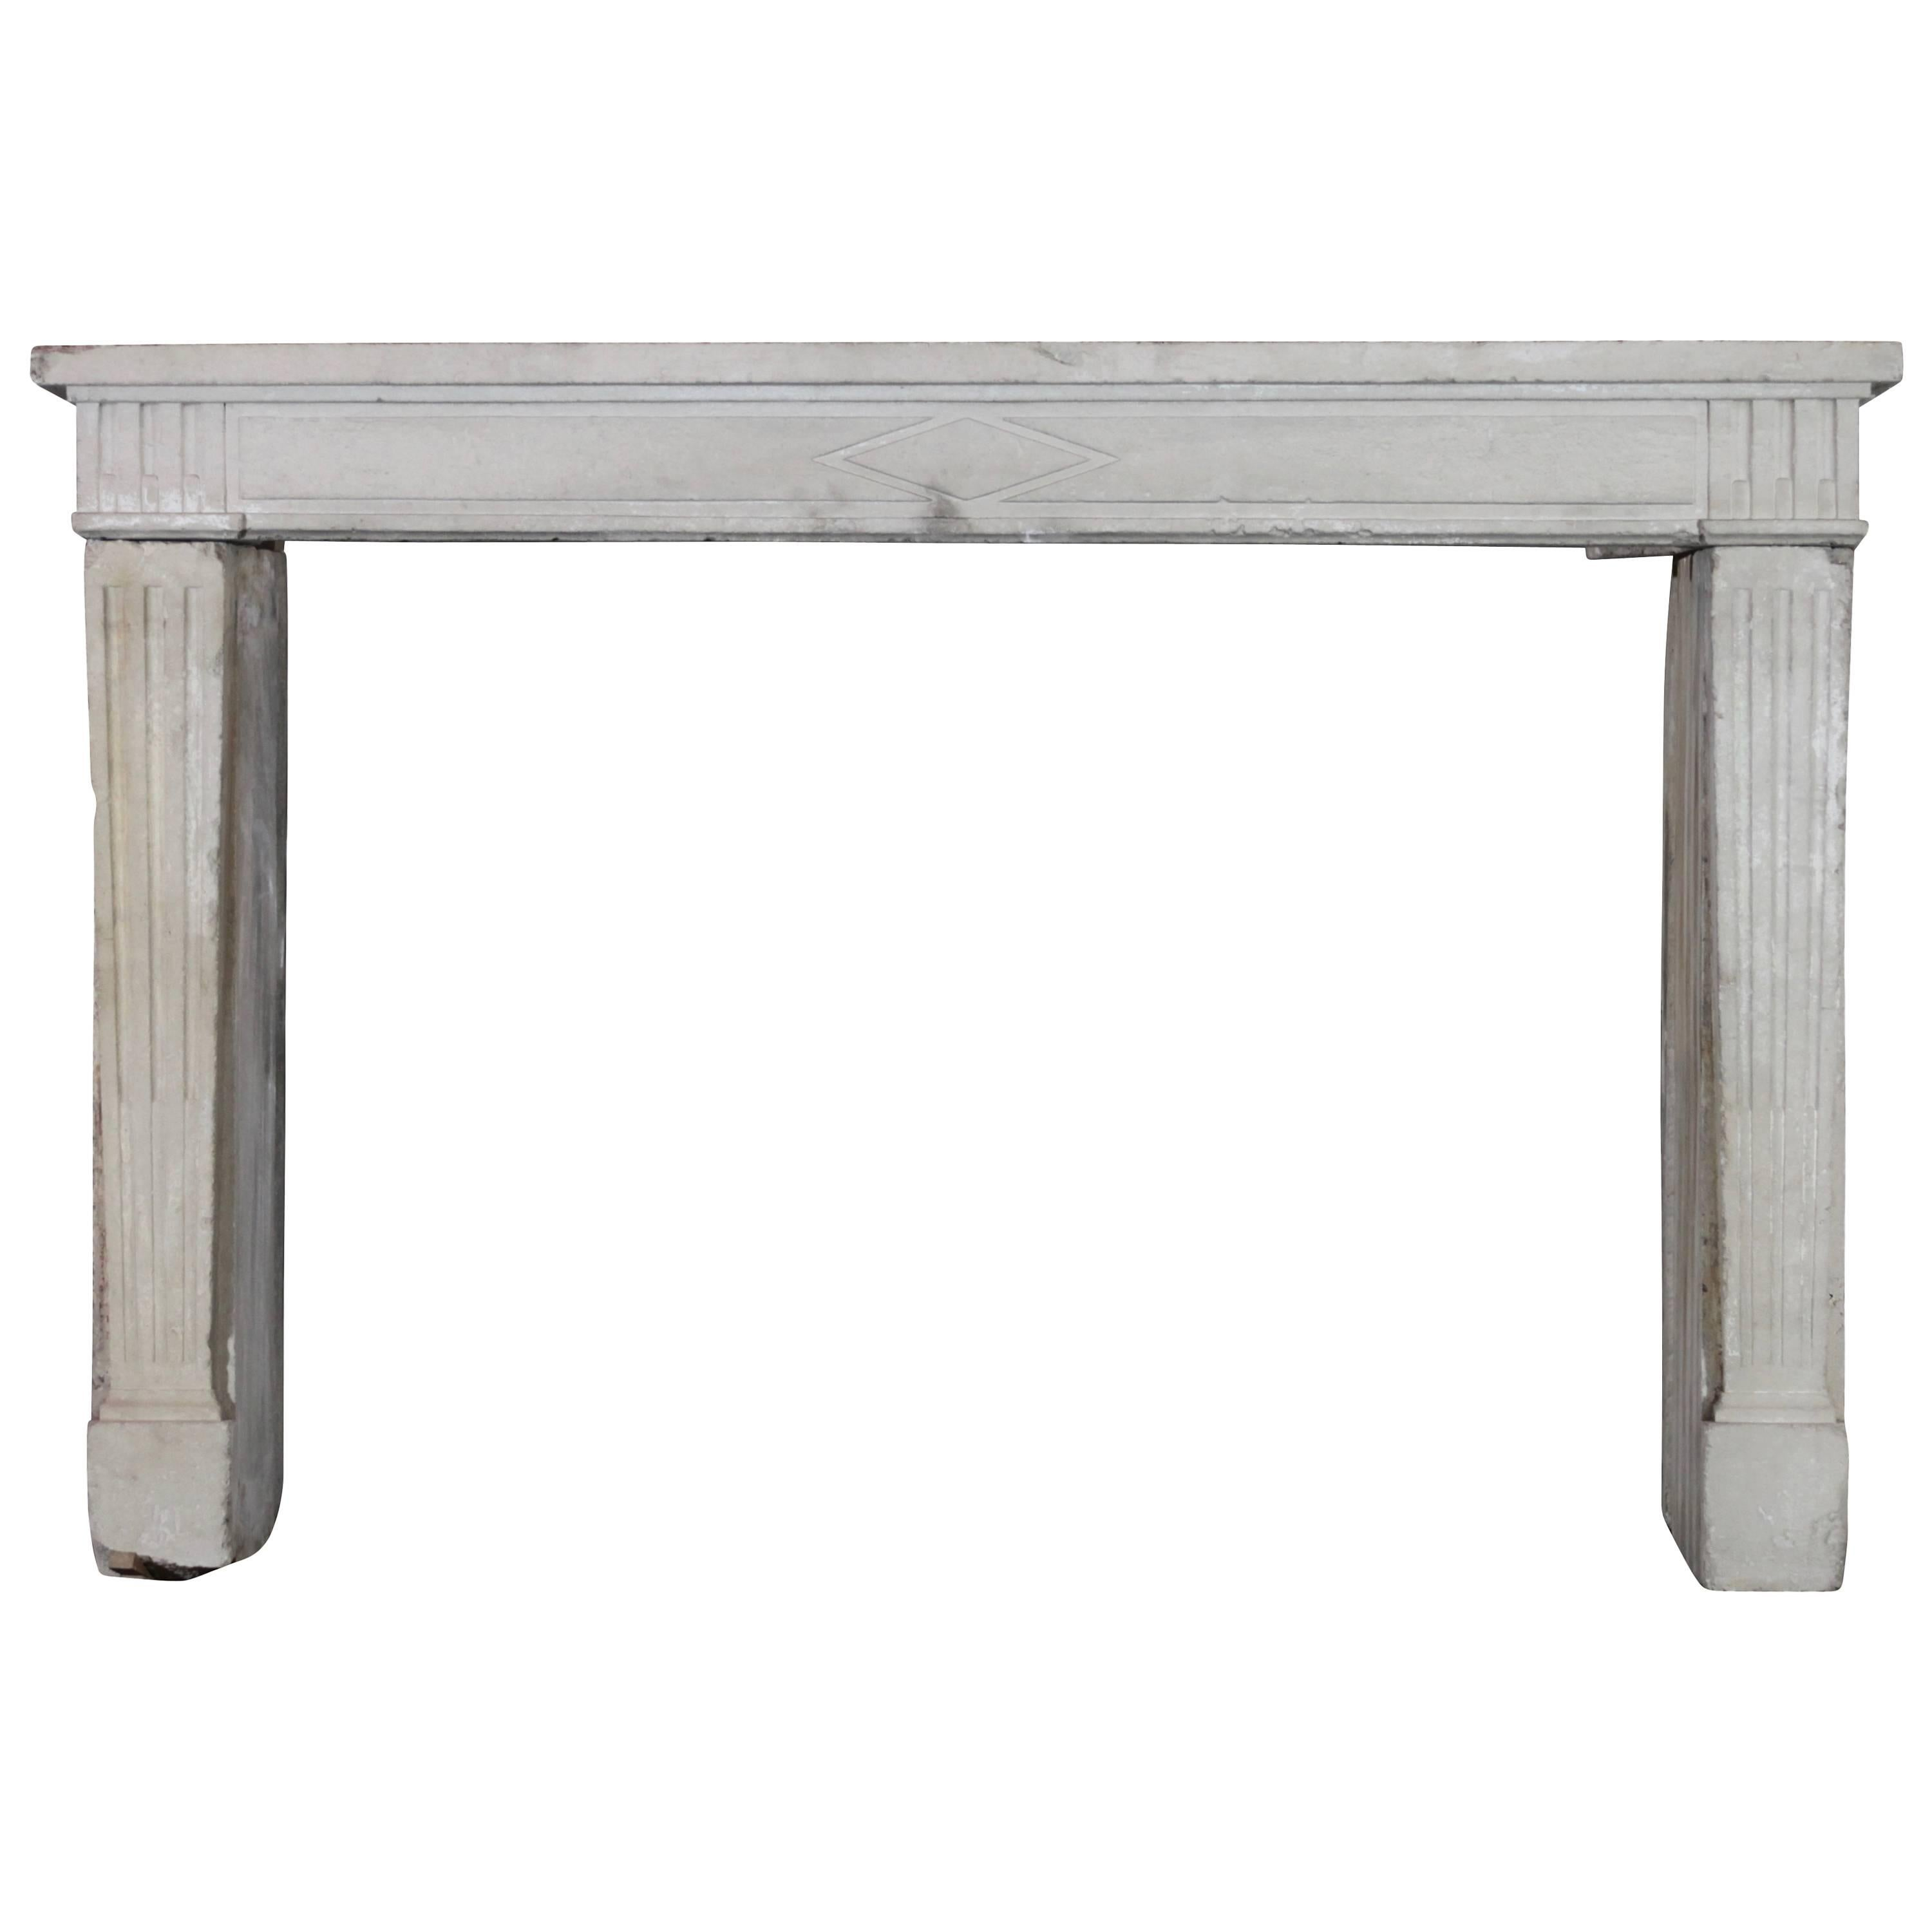 18Th Century Original Antique French Country Fireplace Mantel For Sale